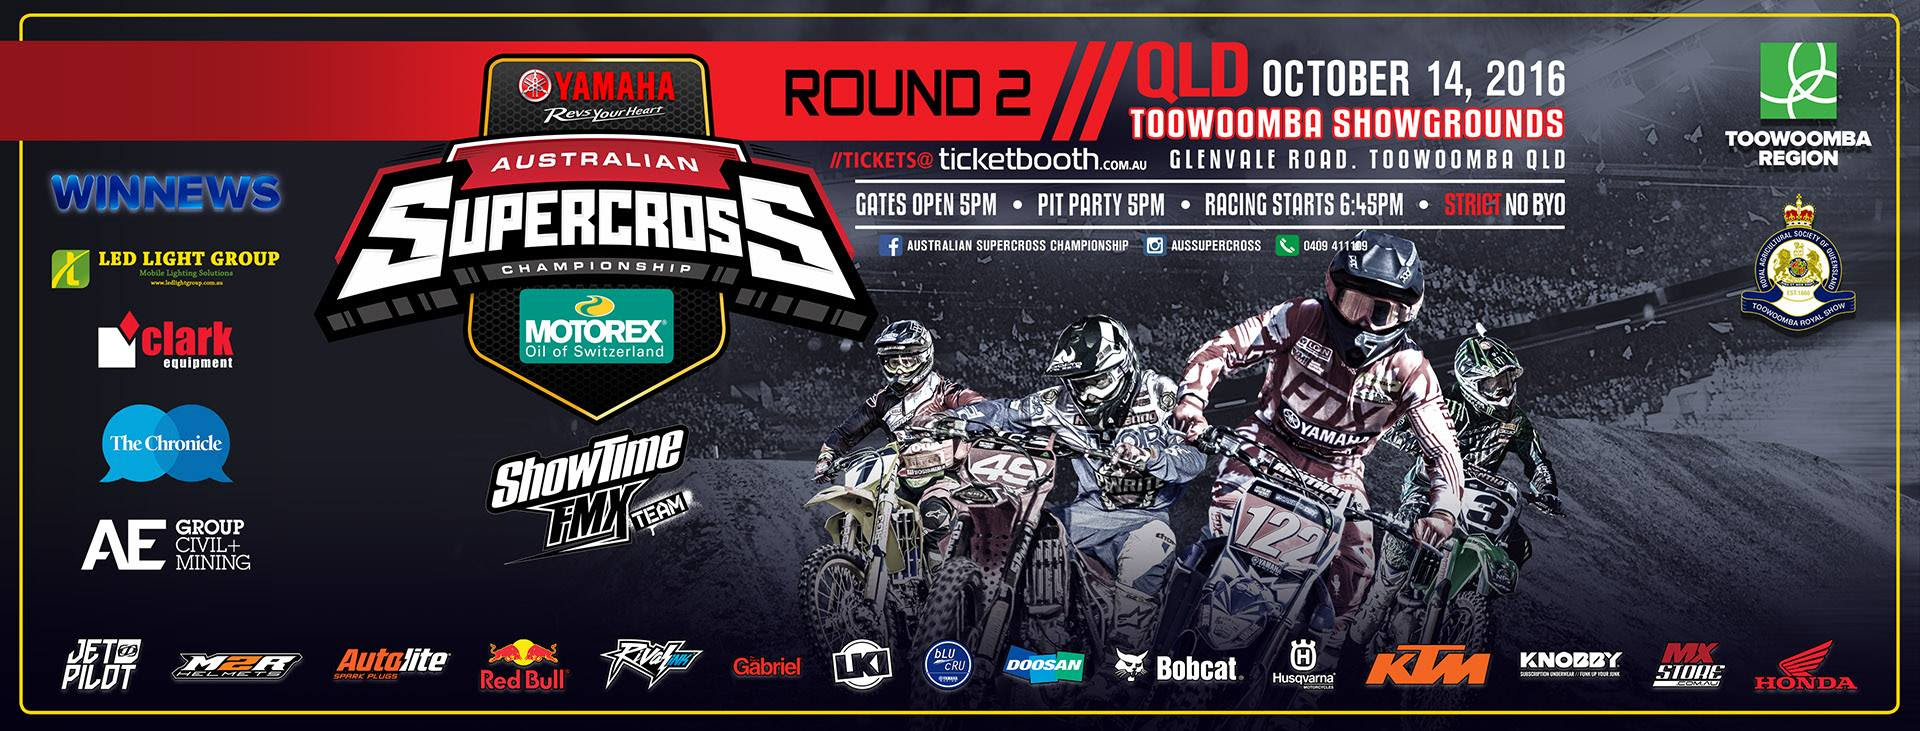 Tickets for Australian Supercross Championships 2016 - Toowoomba - Round 2 in Toowoomba from Ticketbooth